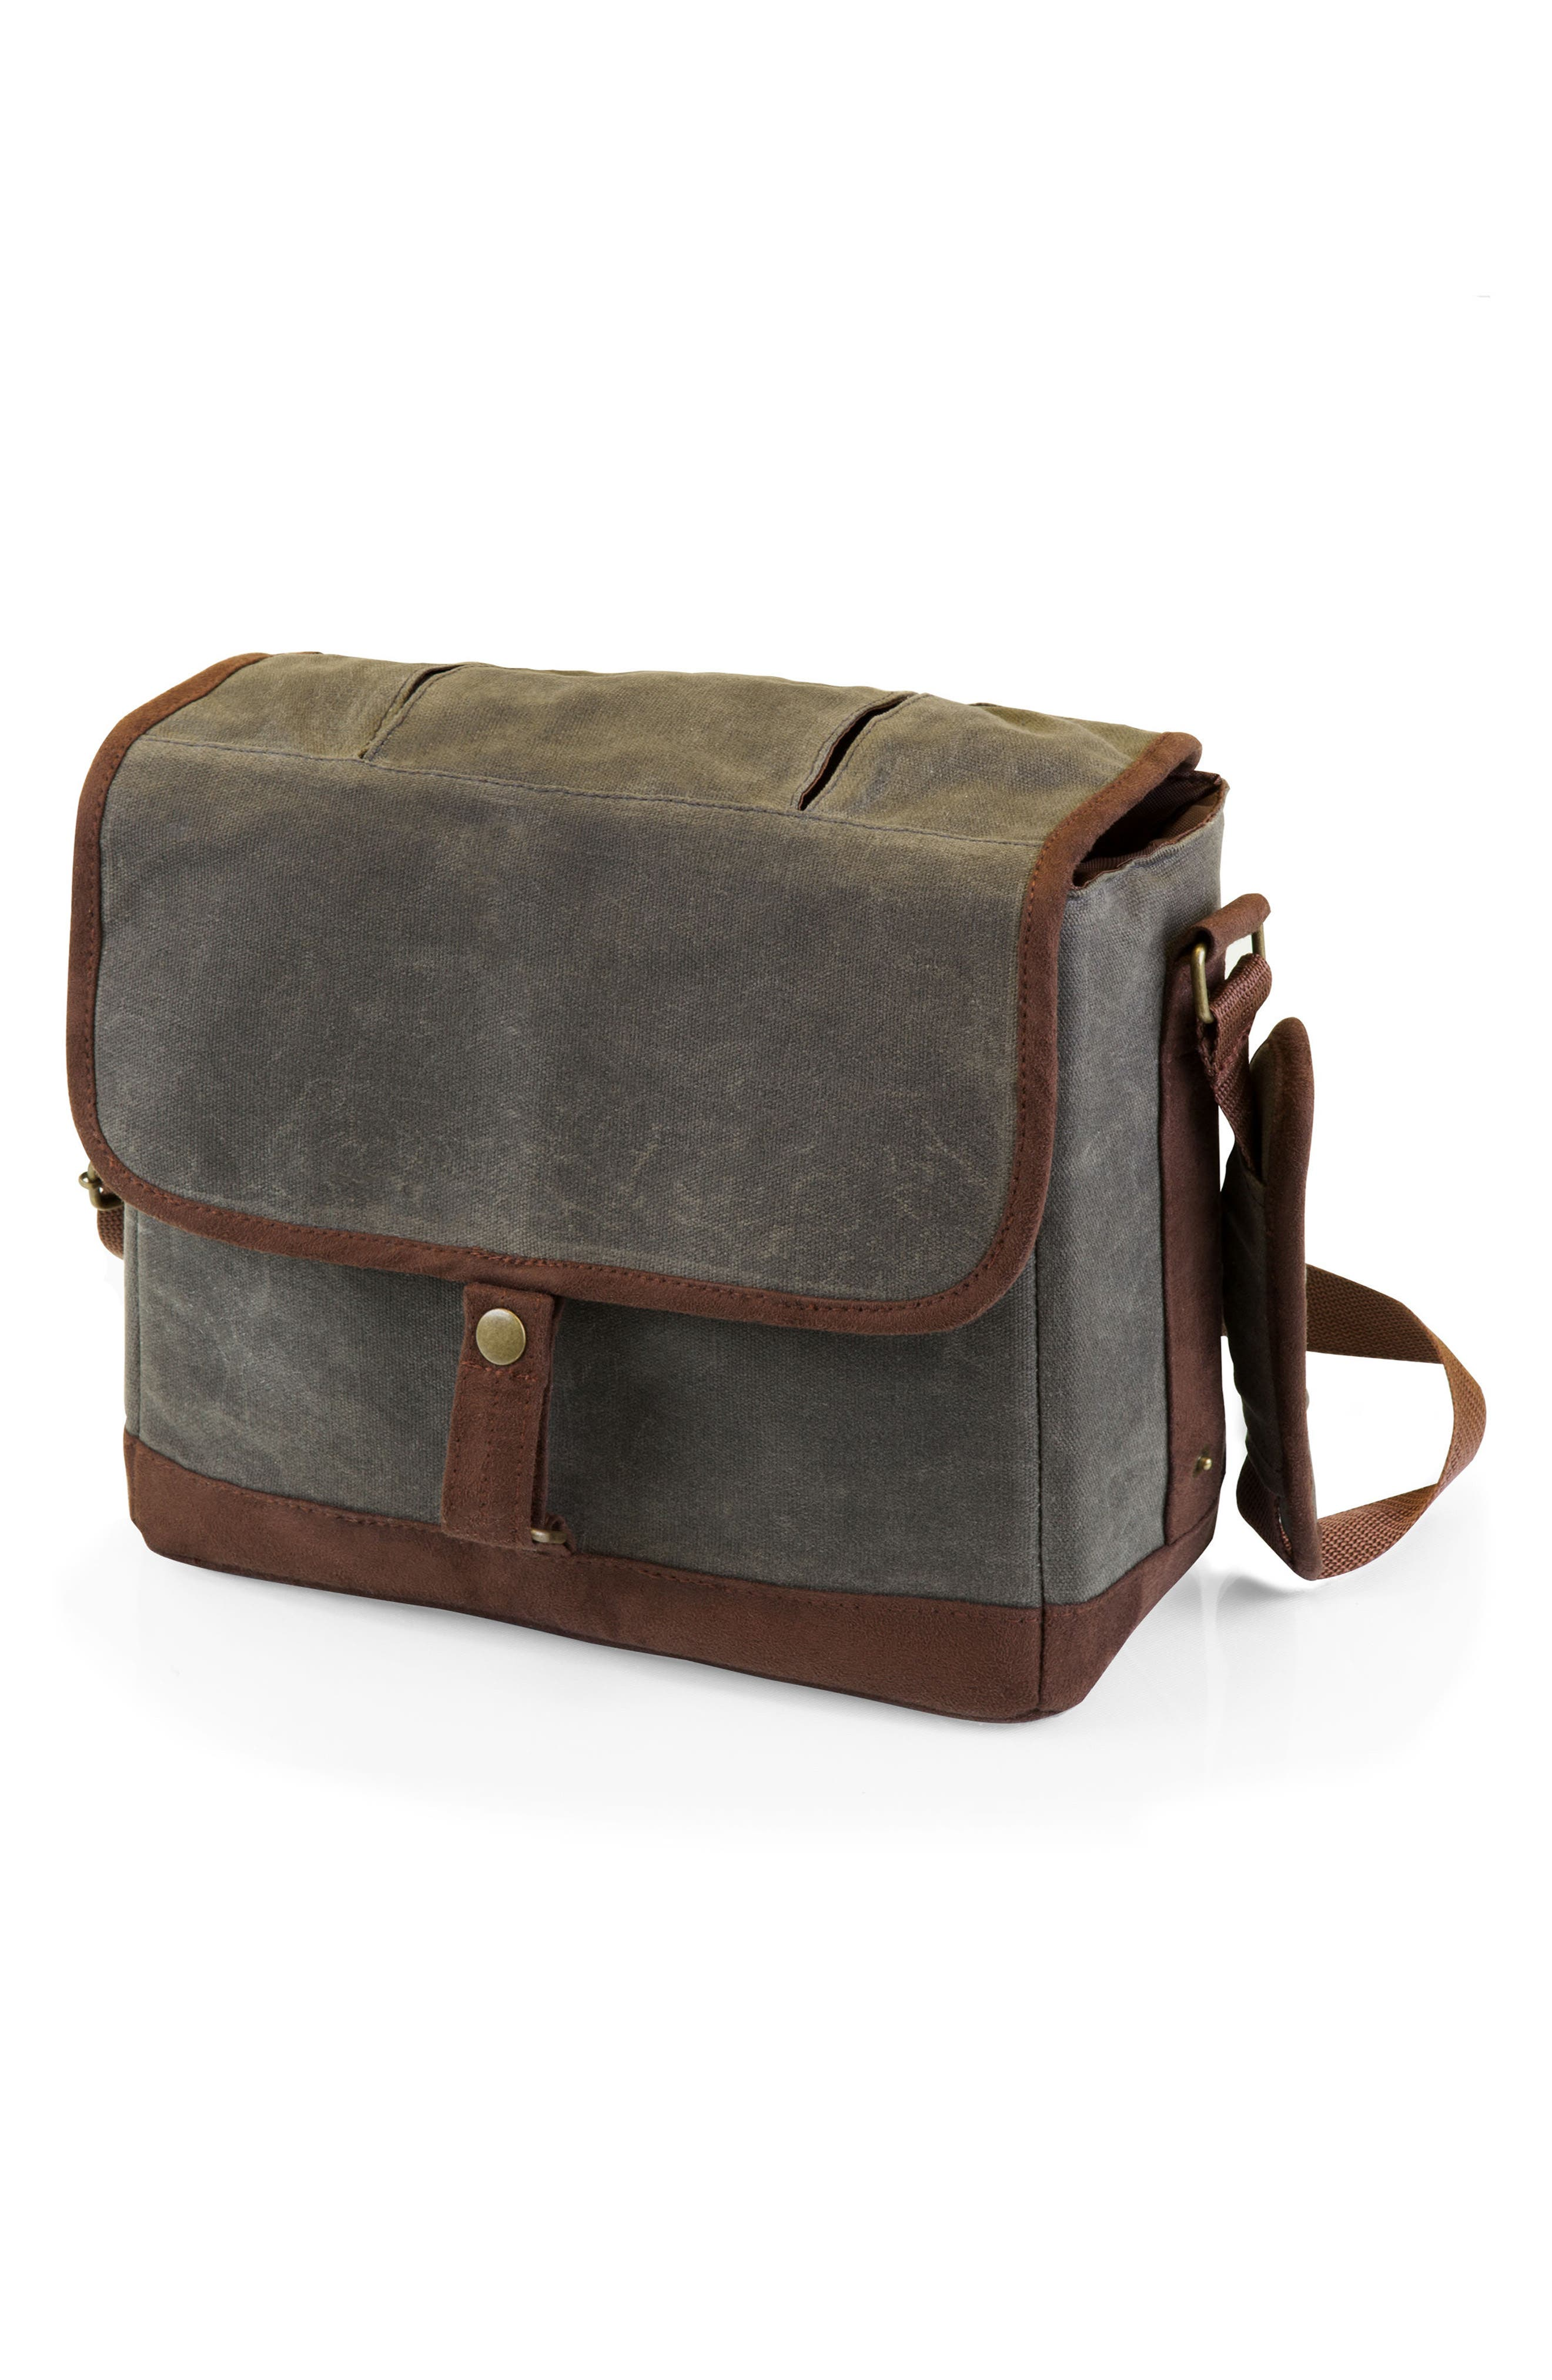 Insulated Double Growler Tote,                             Main thumbnail 1, color,                             Green/ Brown